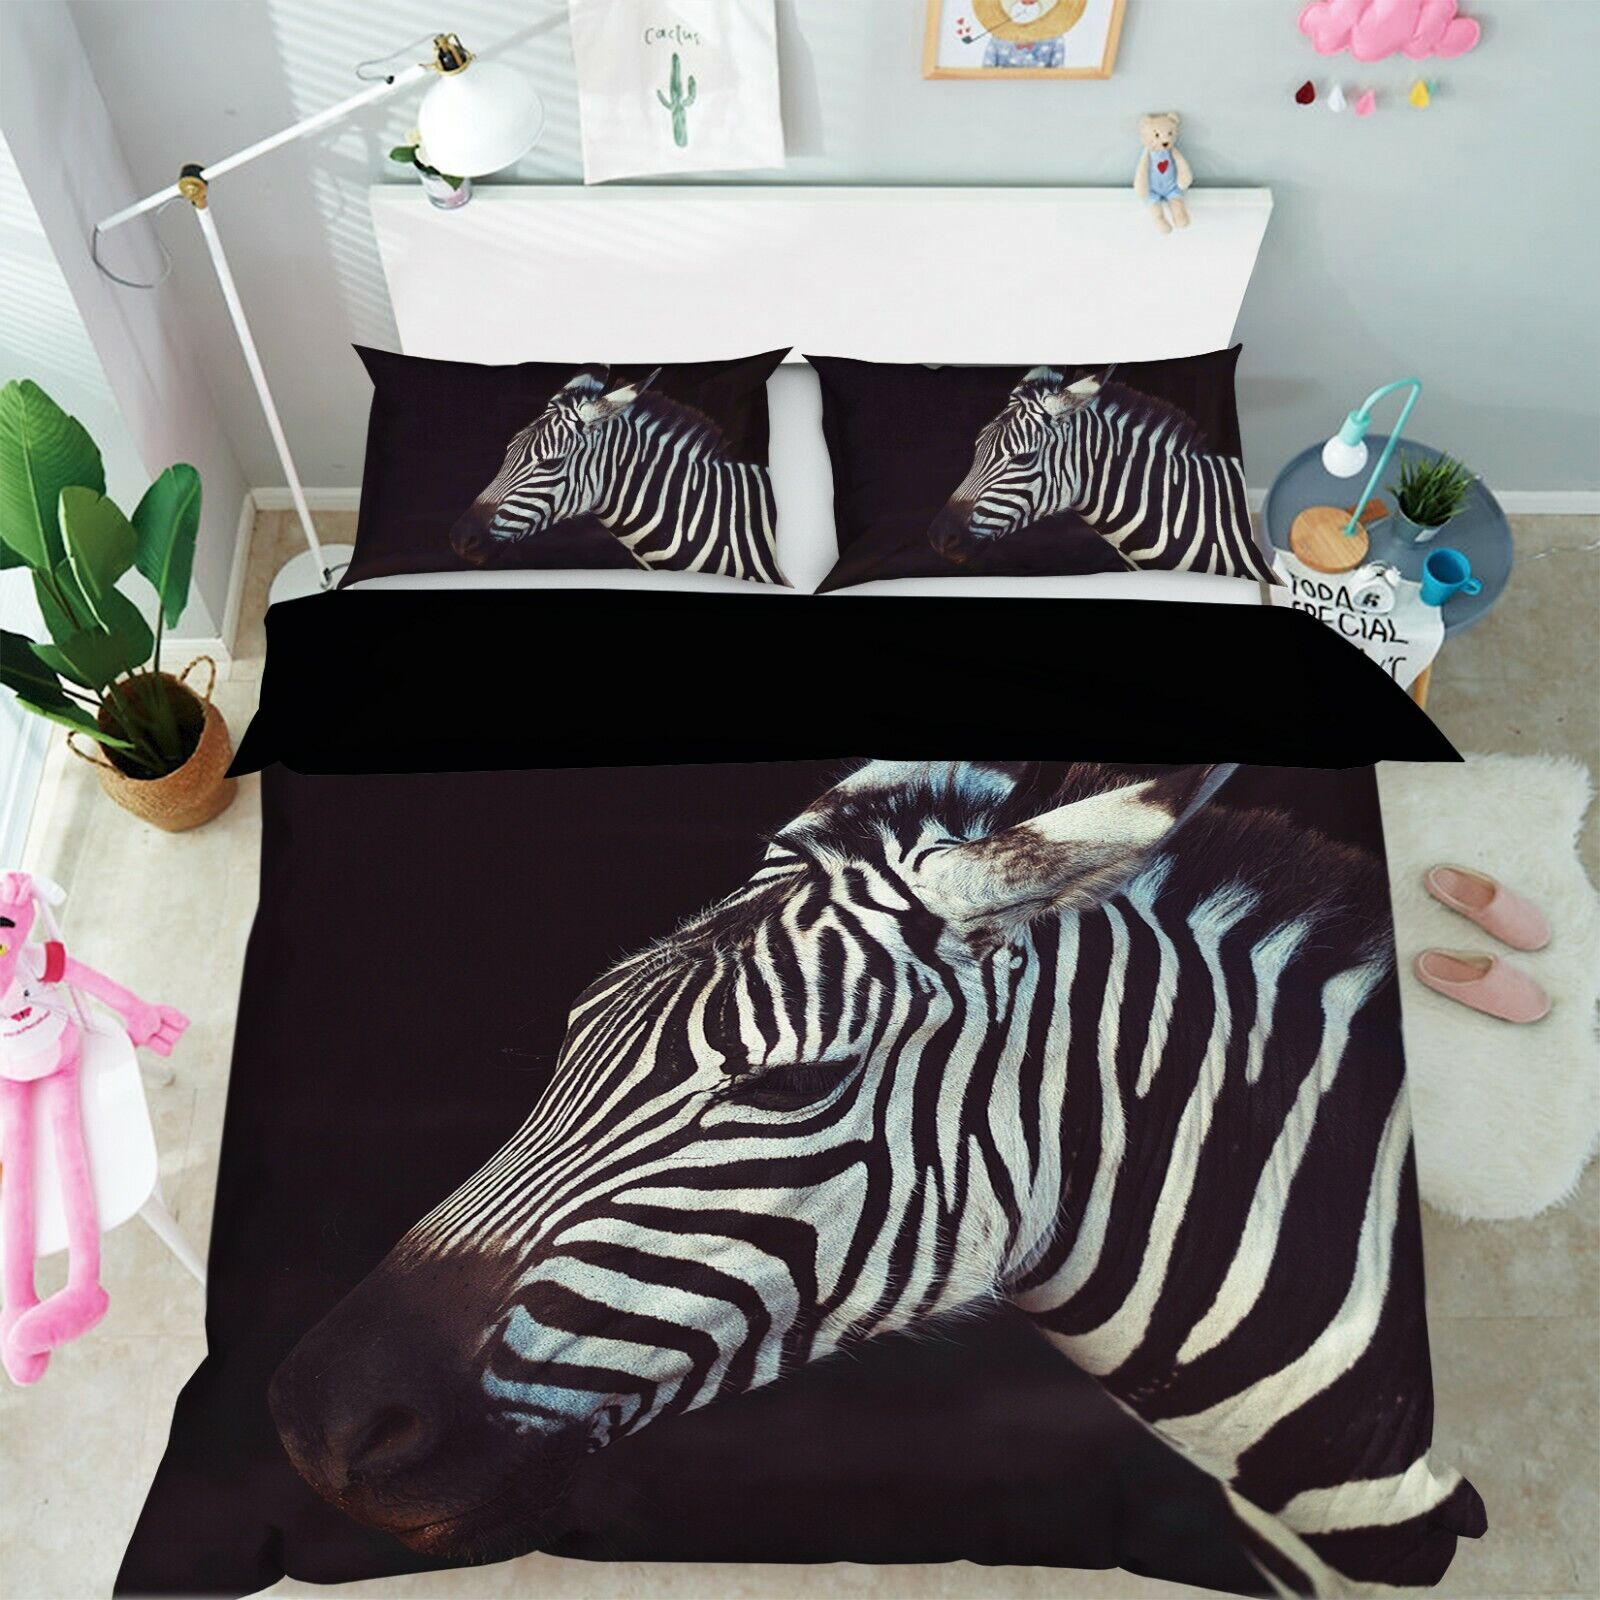 3D Cute Zebra Head R101 Animal Bett Pillowcases Quilt Duvet Startseite Königin König Zoe